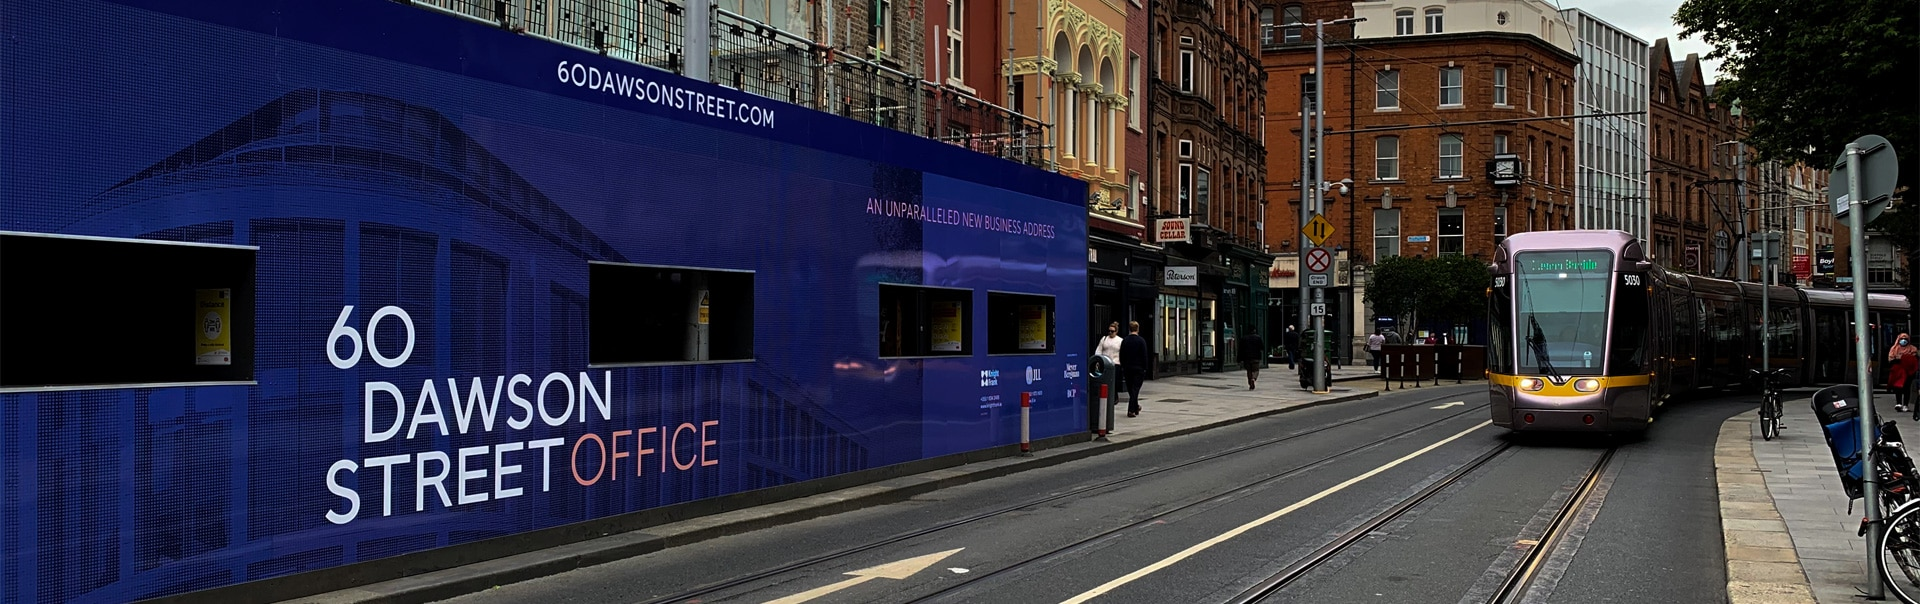 Placemaking hoarding for the new office development at 60 Dawson Street